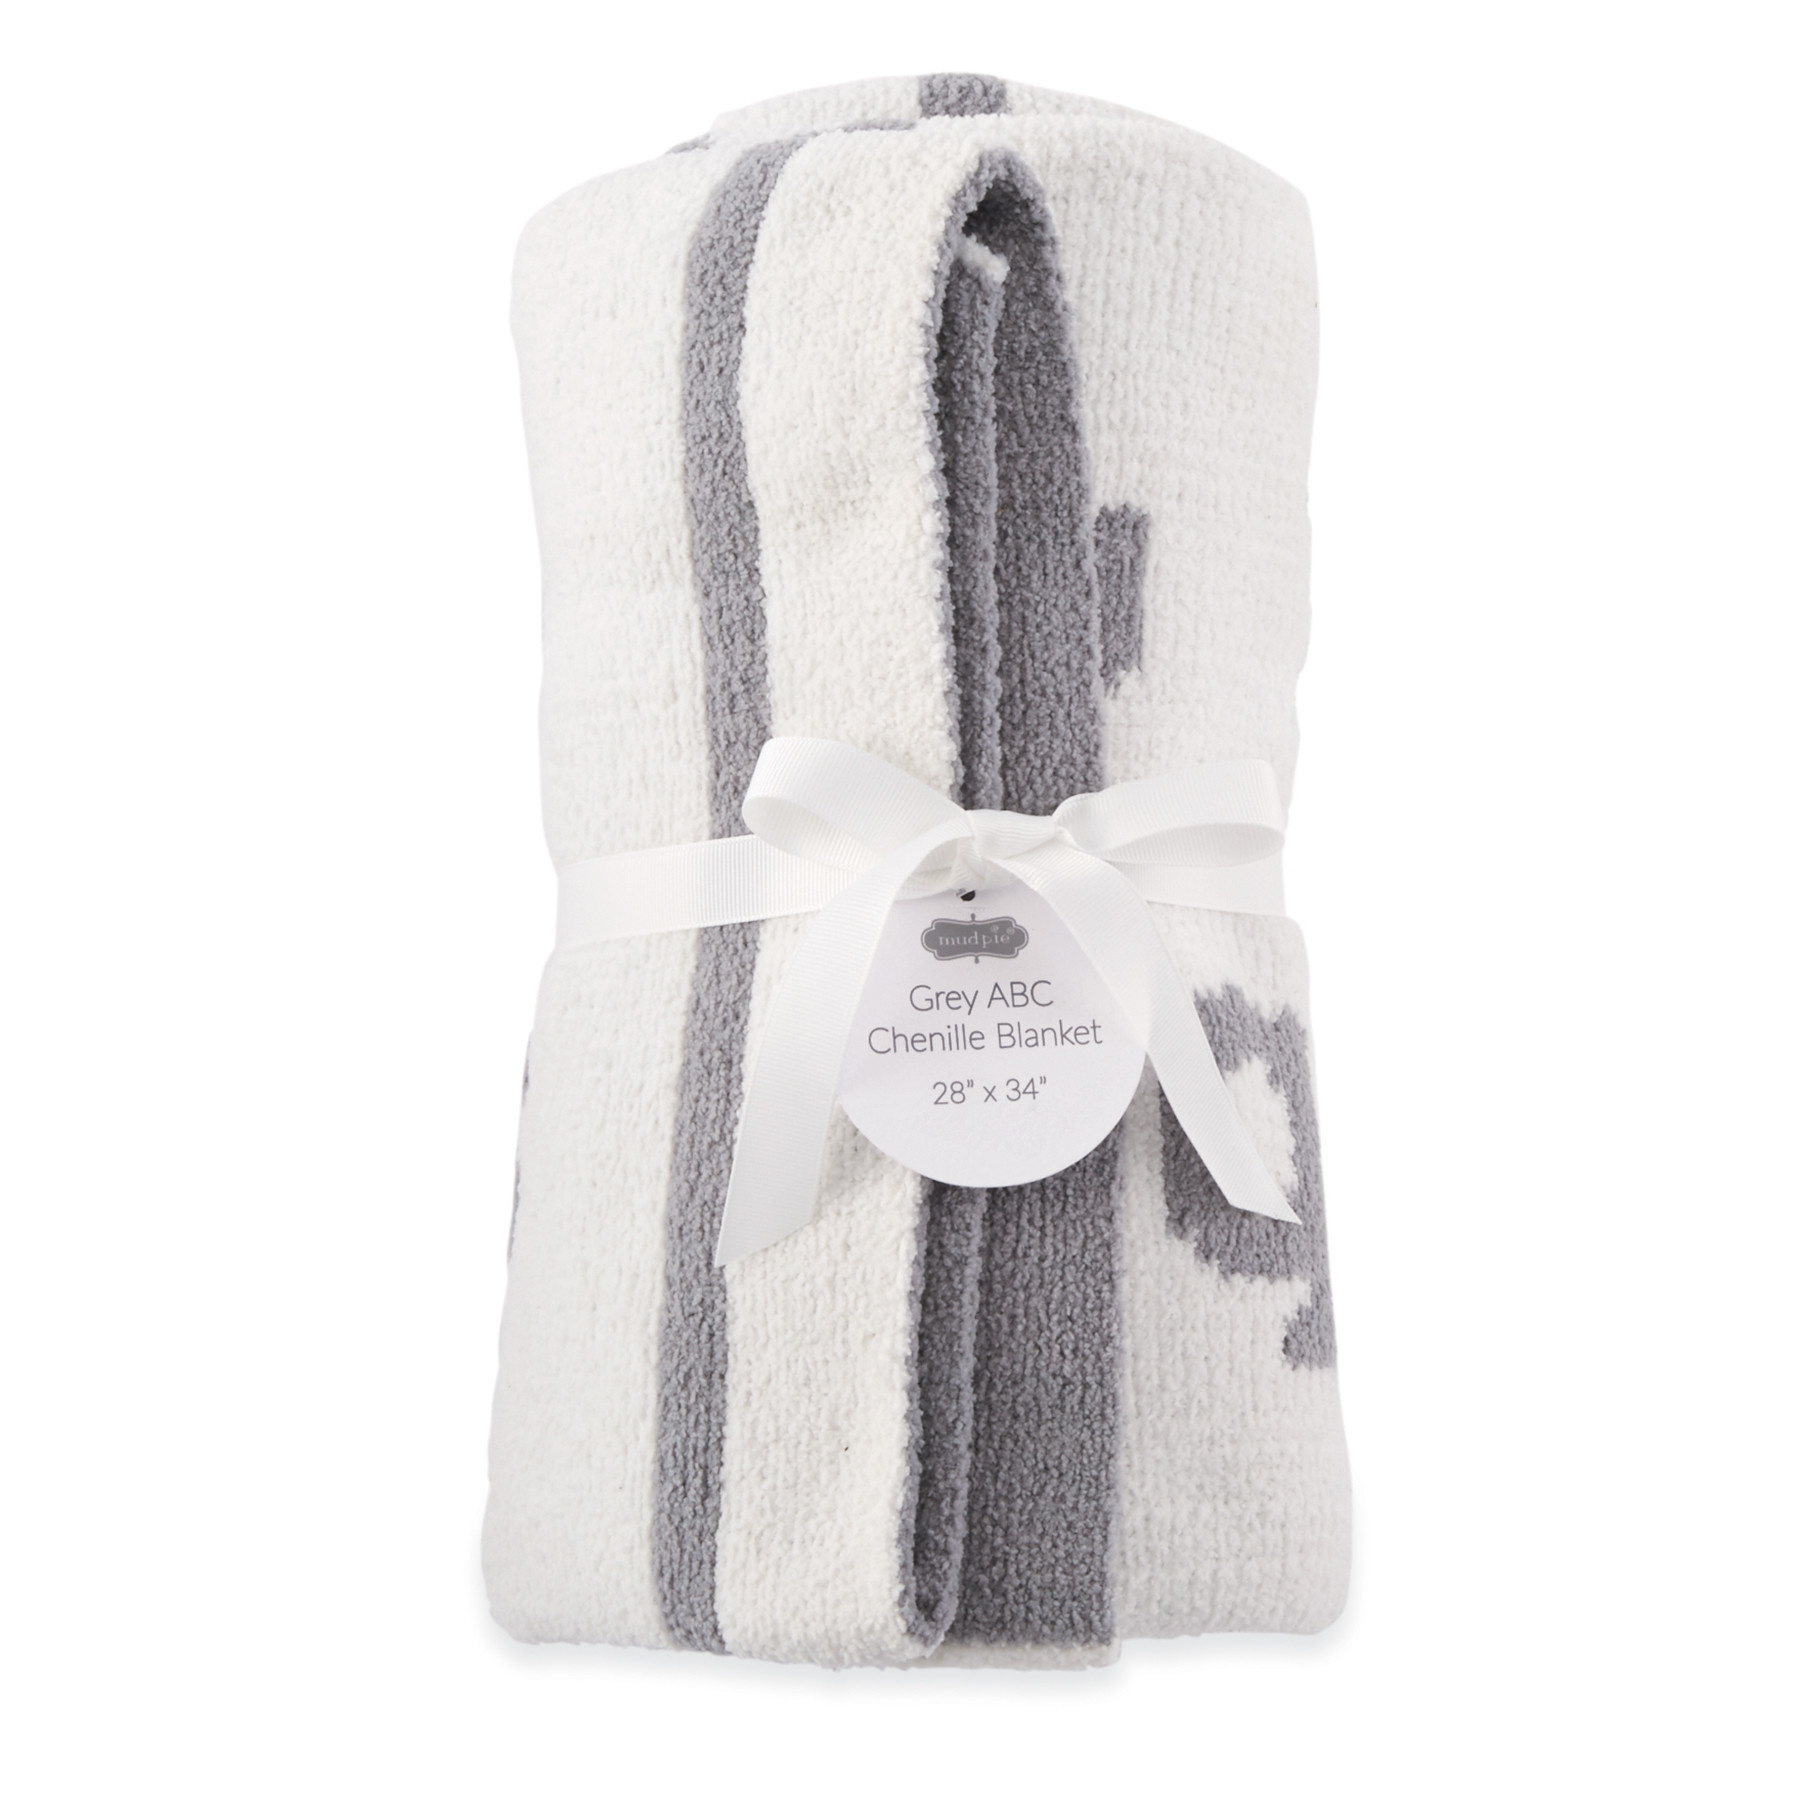 Mud Pie GREY ABC CHENILLE BLANKET